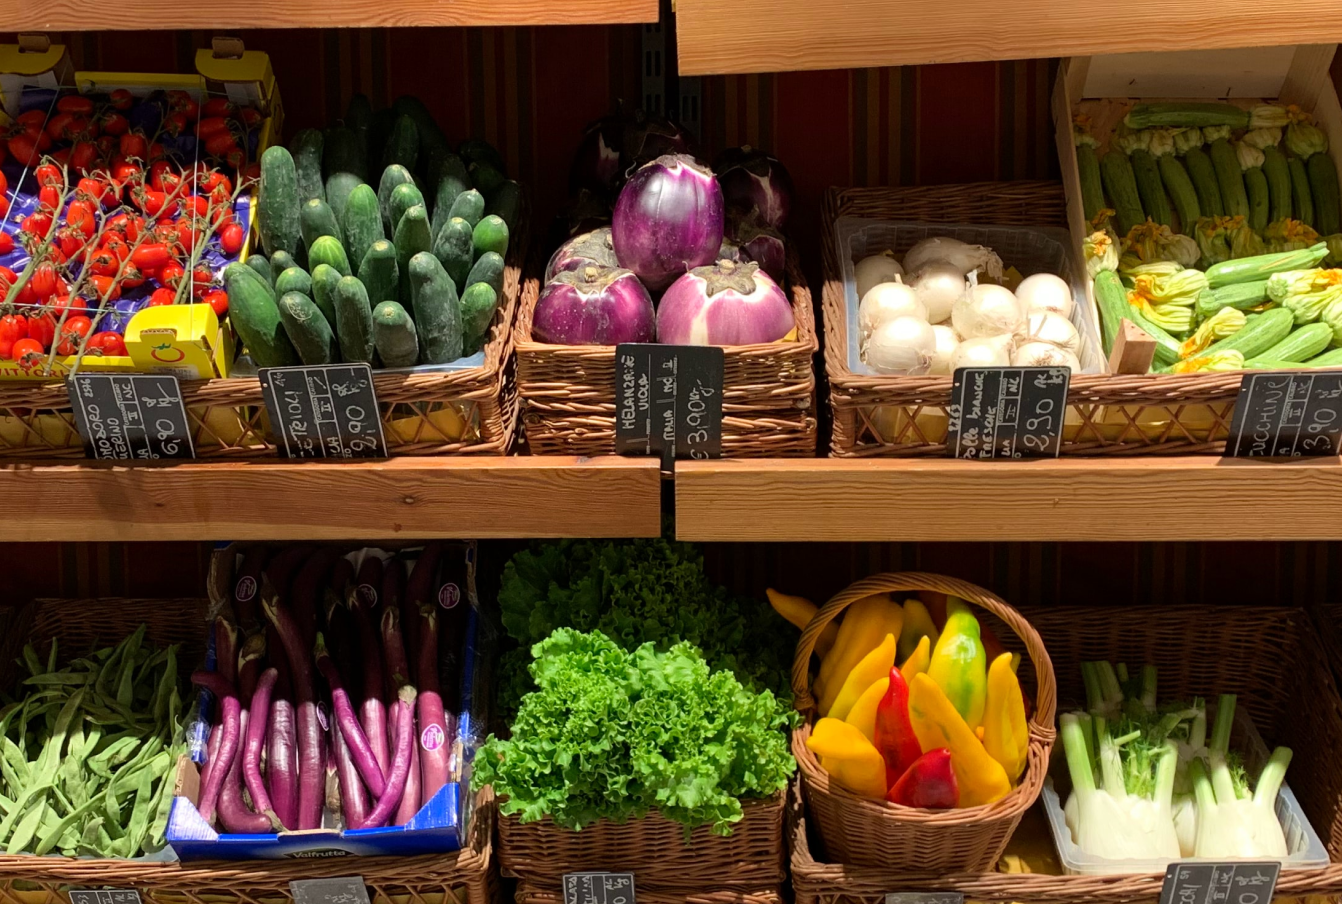 Vegetable produce in a grocery store aisle.